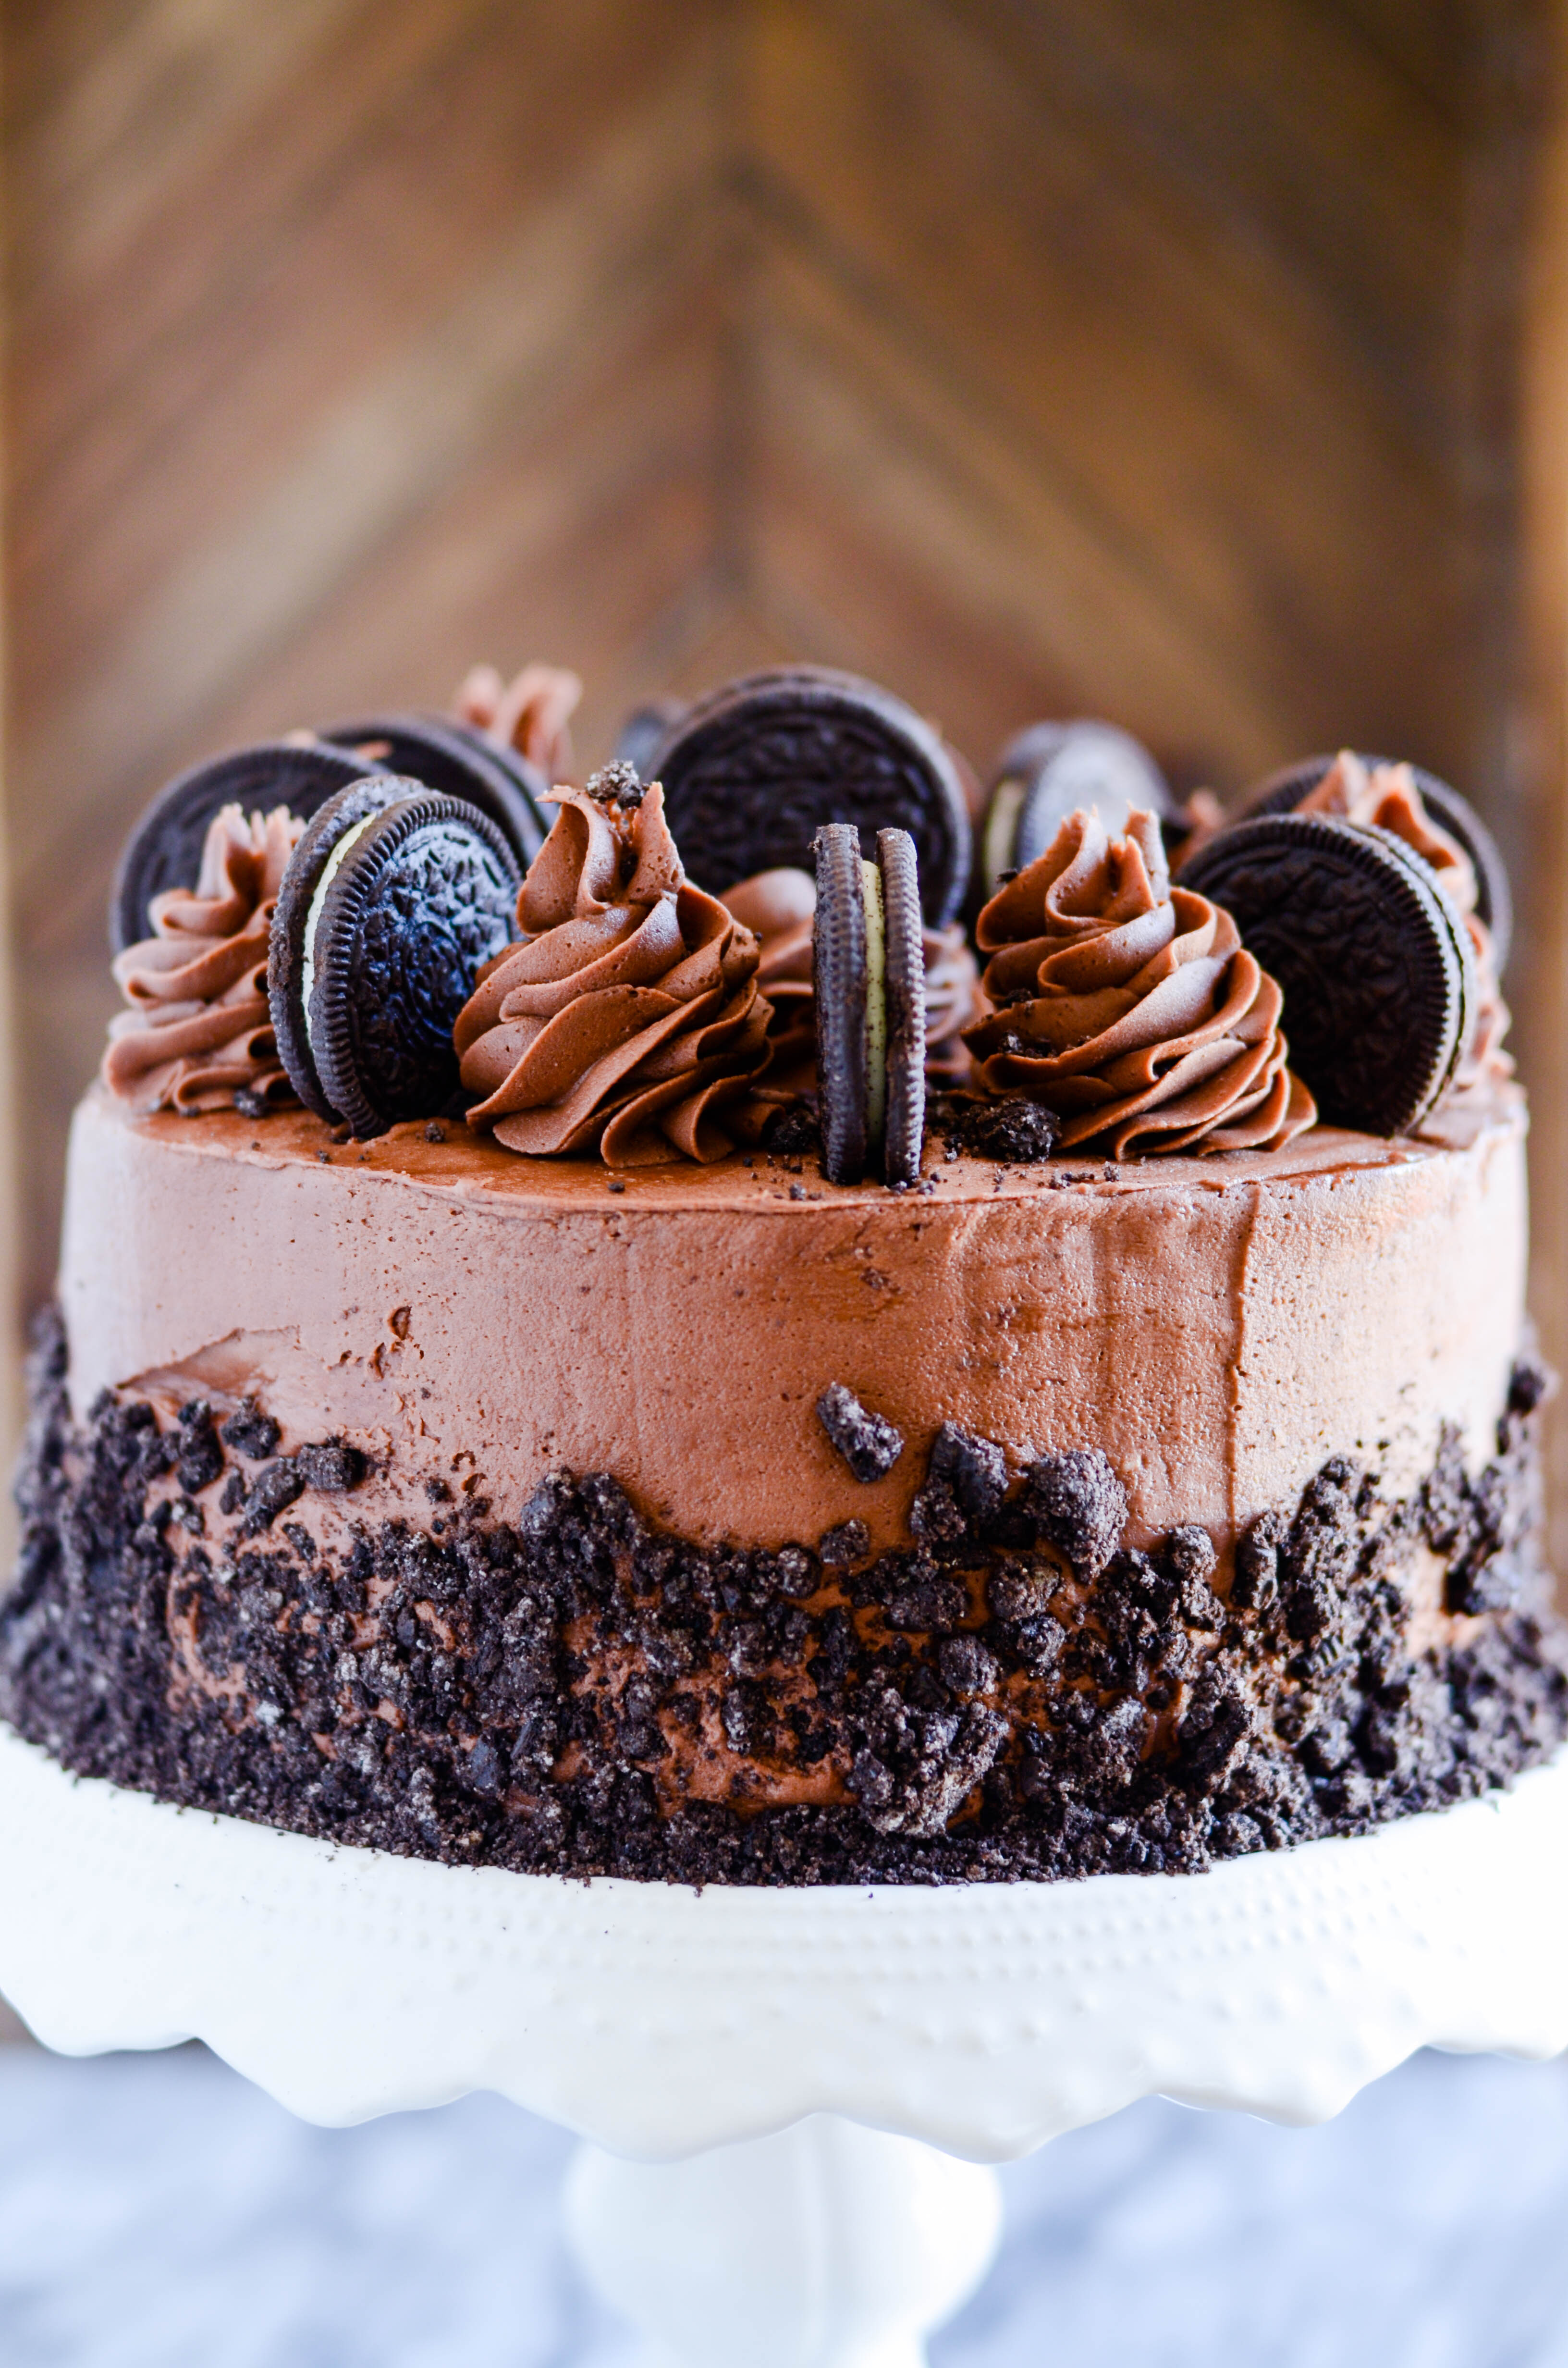 Two layers of rich, chocolate Oreo cake with a fudgy chocolate buttercream and Oreo crumbles on top.